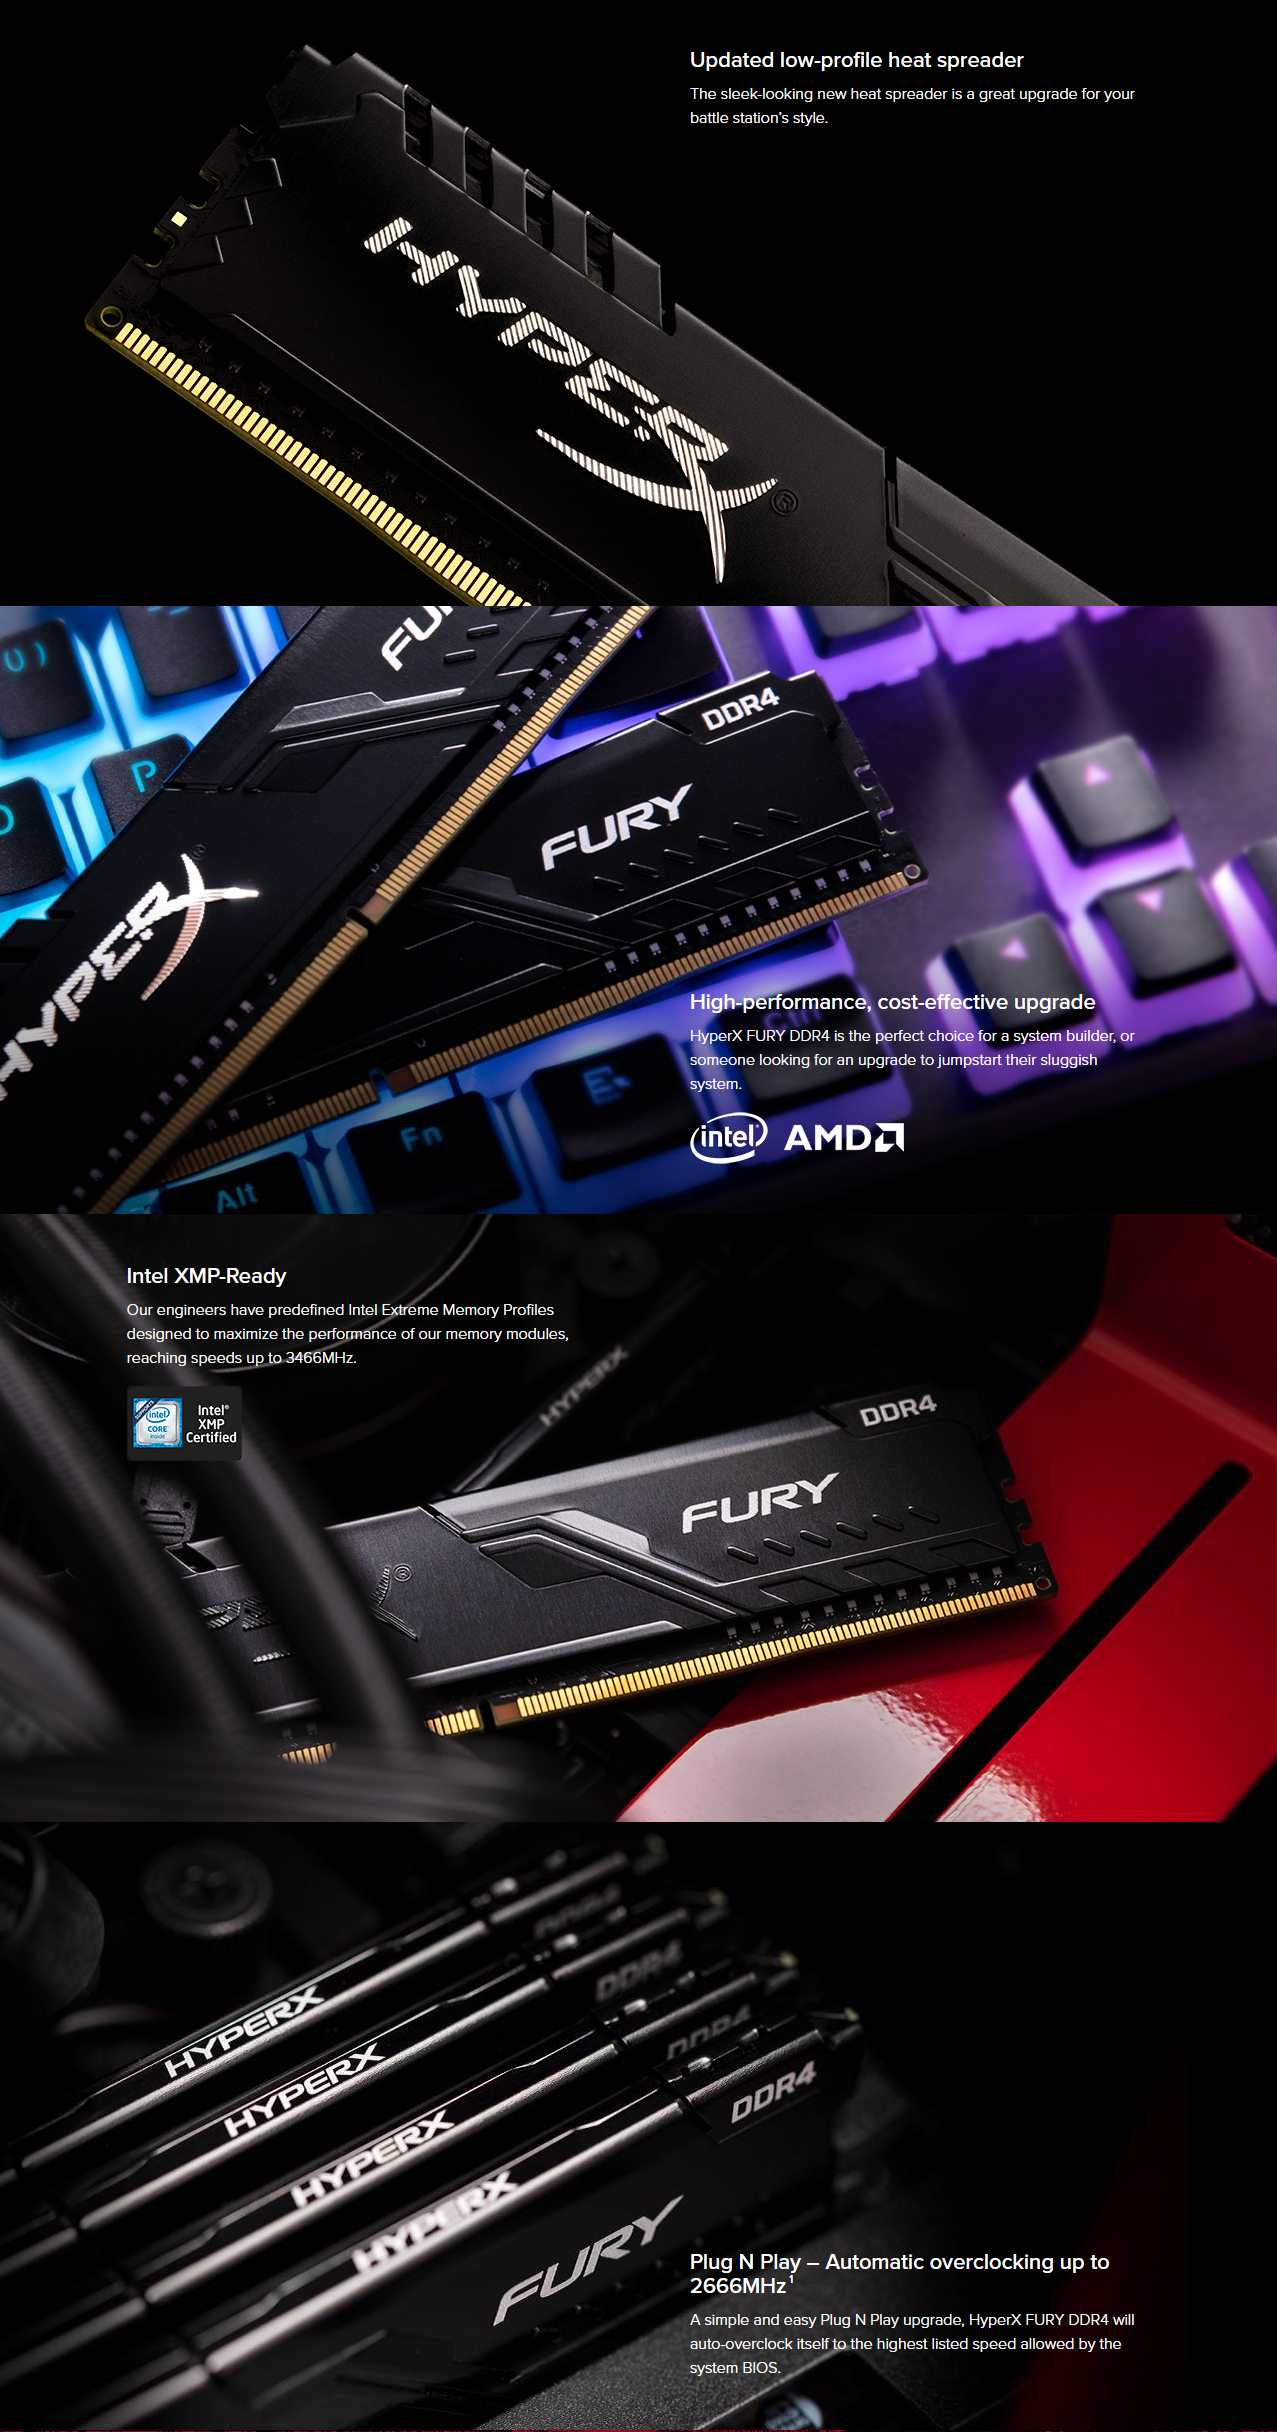 A large marketing image providing additional information about the product Kingston 32GB Kit (2x16GB) DDR4 HyperX Fury Black C16 2666MHz - Additional alt info not provided